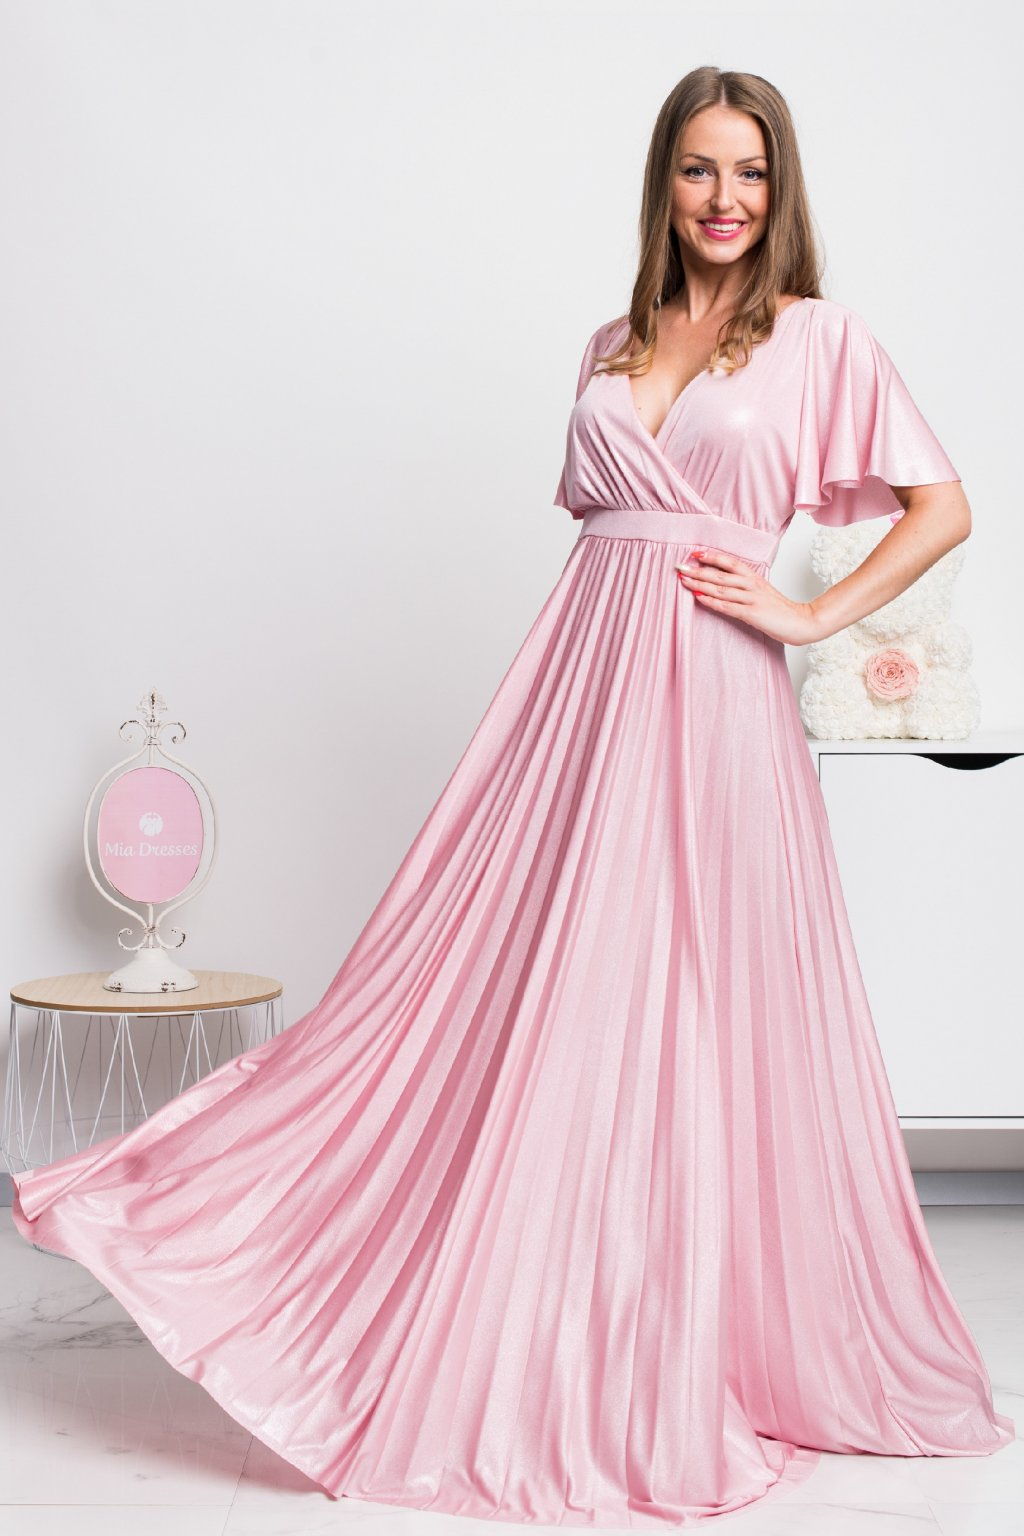 Light pink shiny dress with pleated skirt